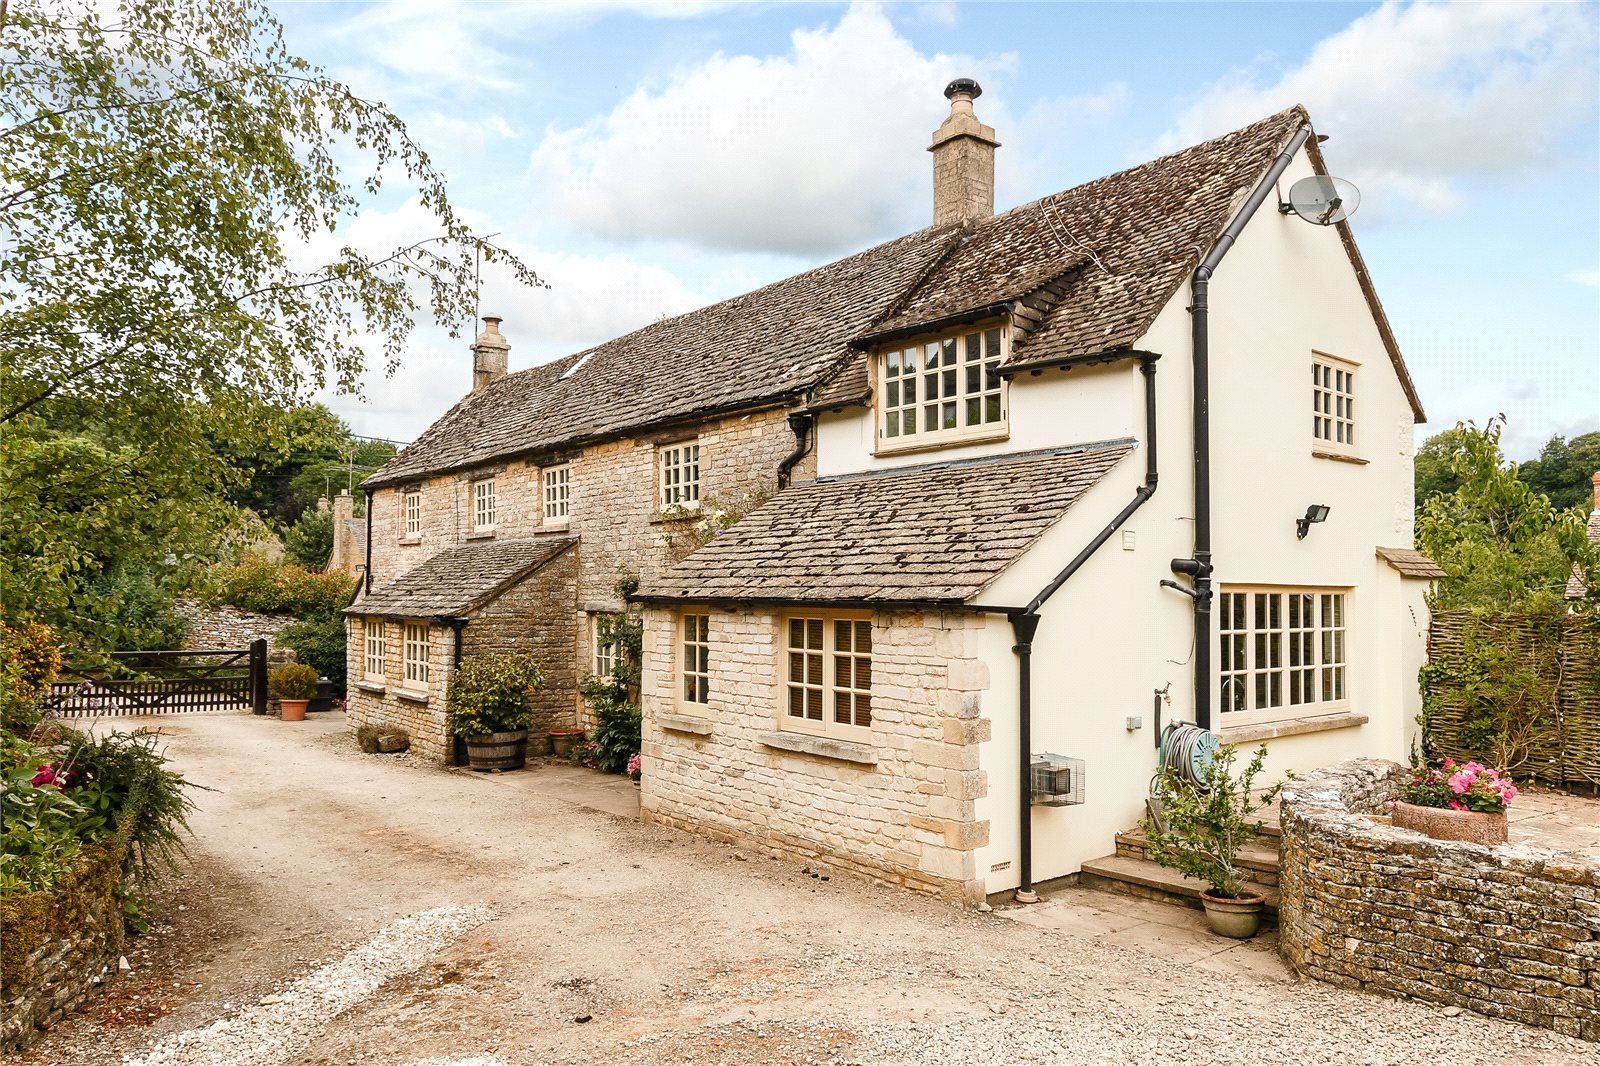 Additional photo for property listing at Duntisbourne Leer, Cirencester, Gloucestershire, GL7 Cirencester, Inghilterra